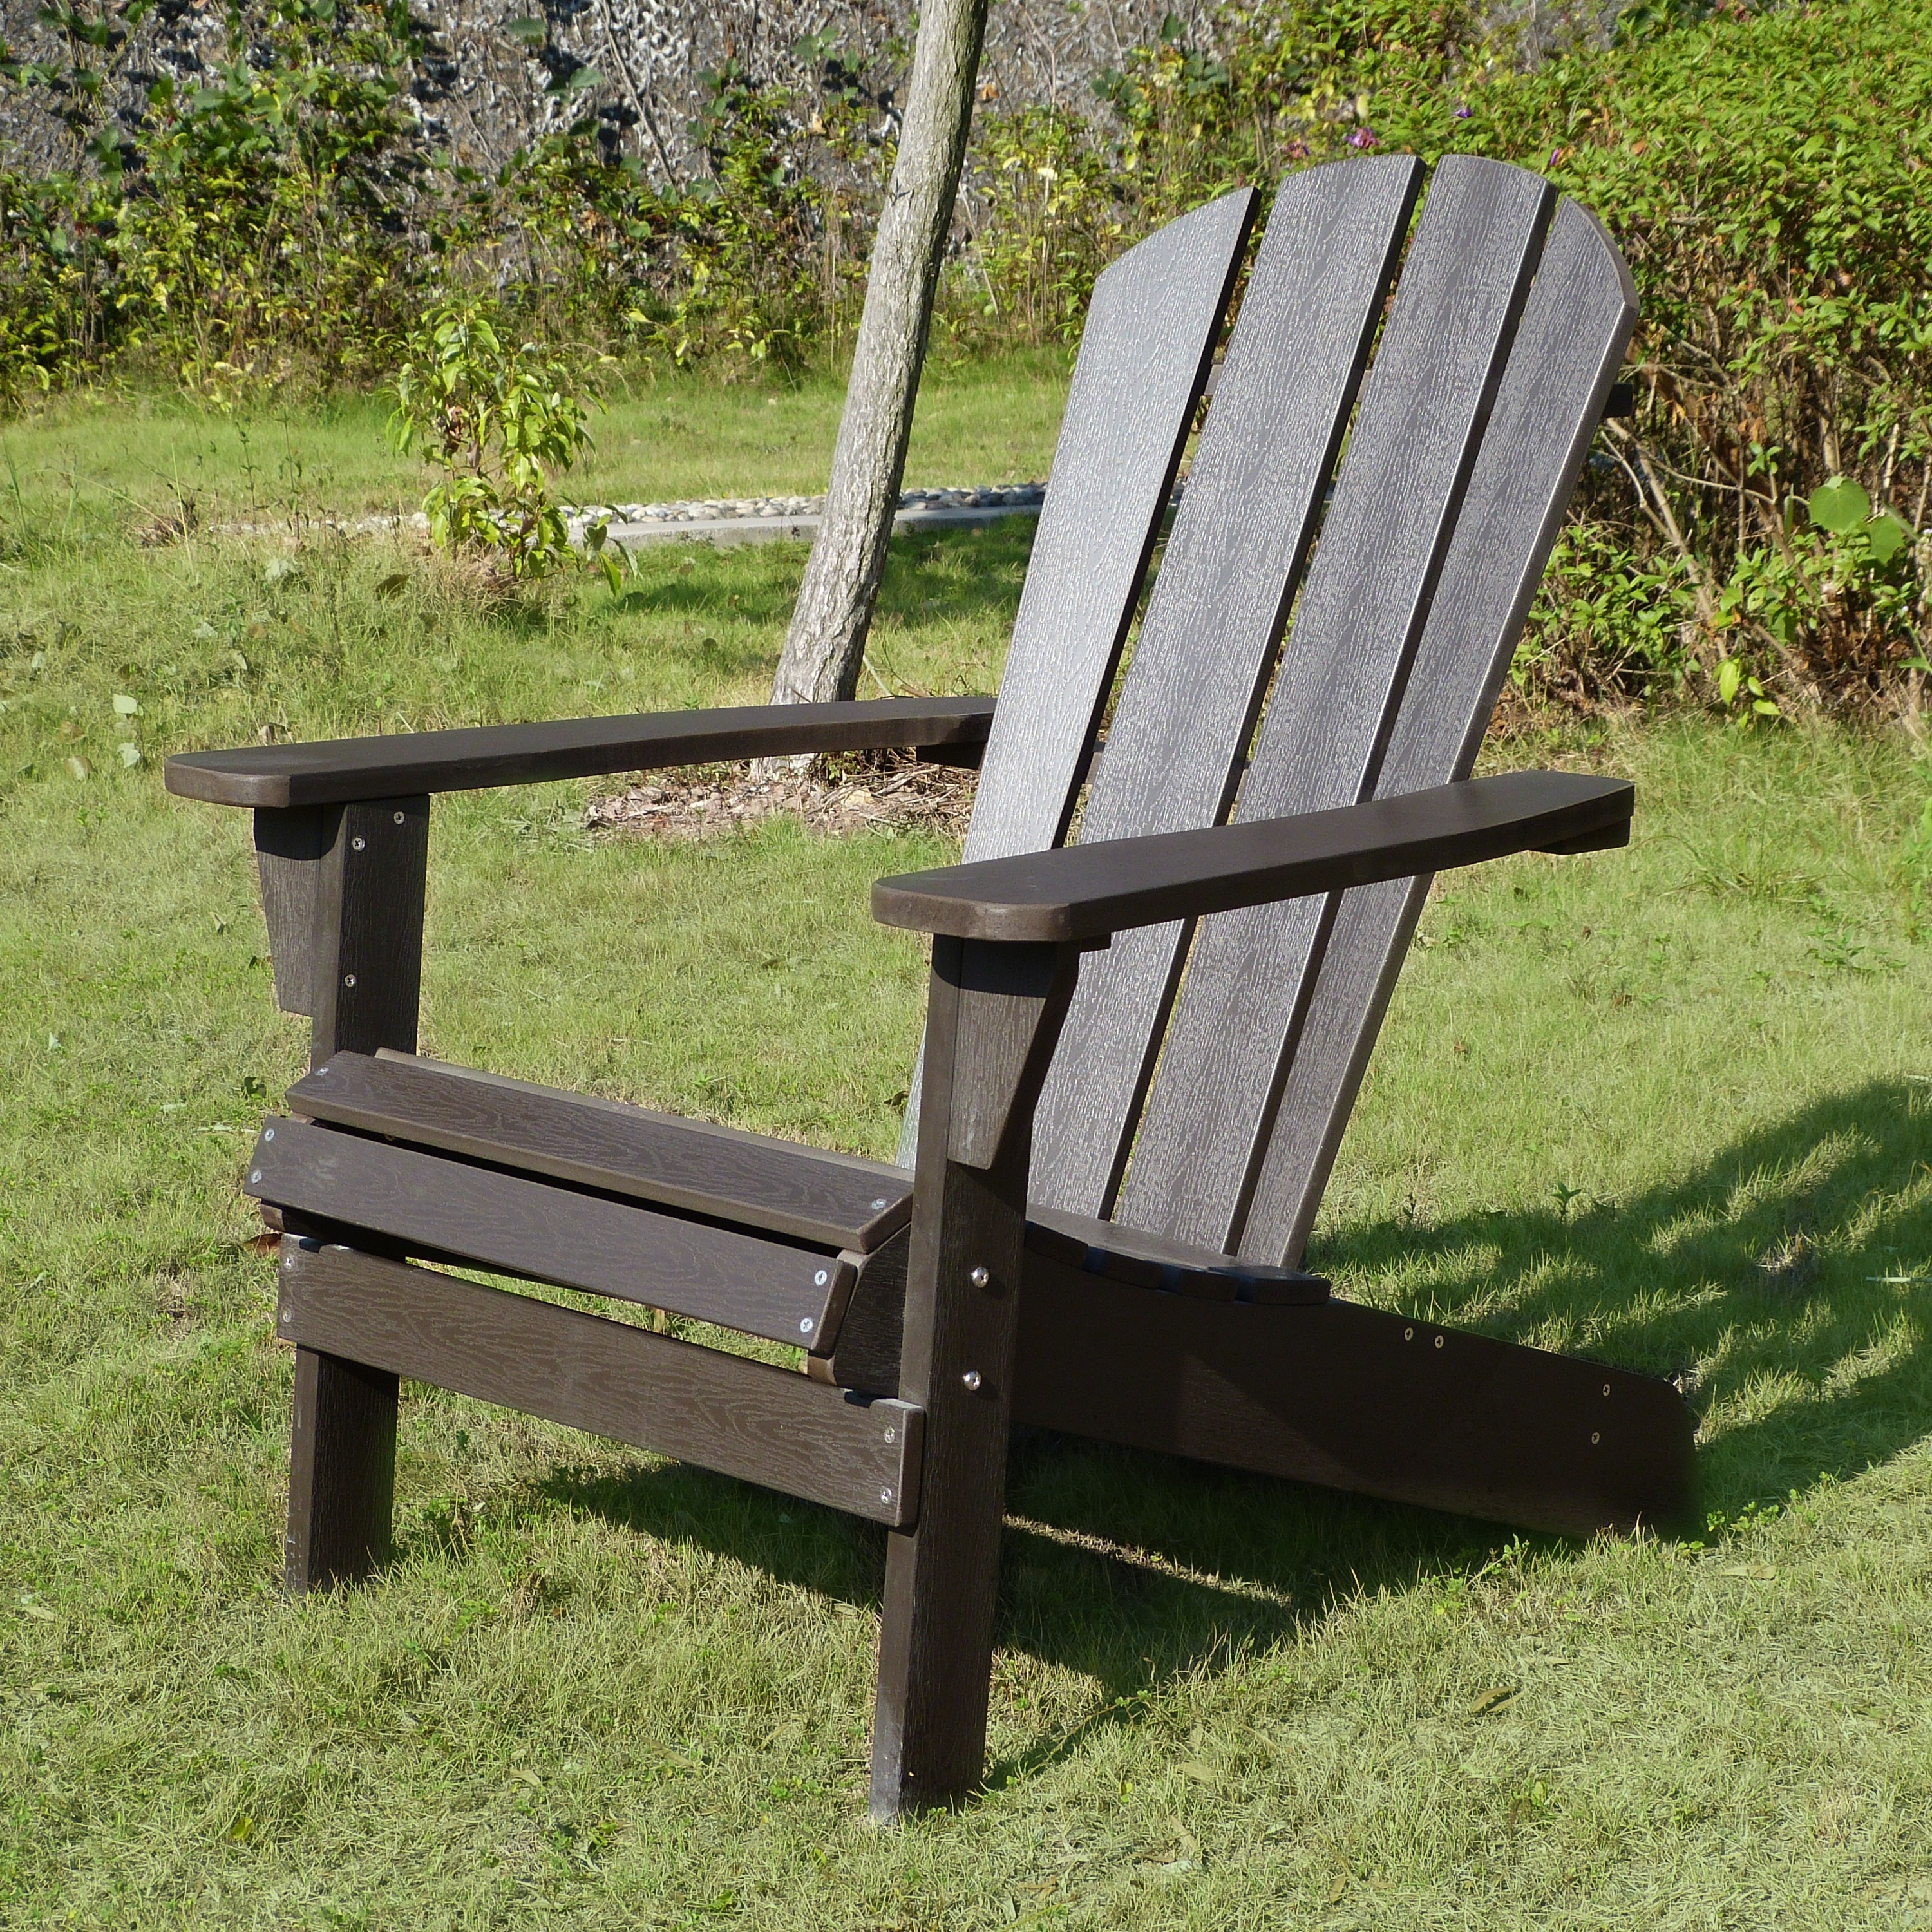 merry garden adirondack chair princess party covers faux wood relaxed espresso